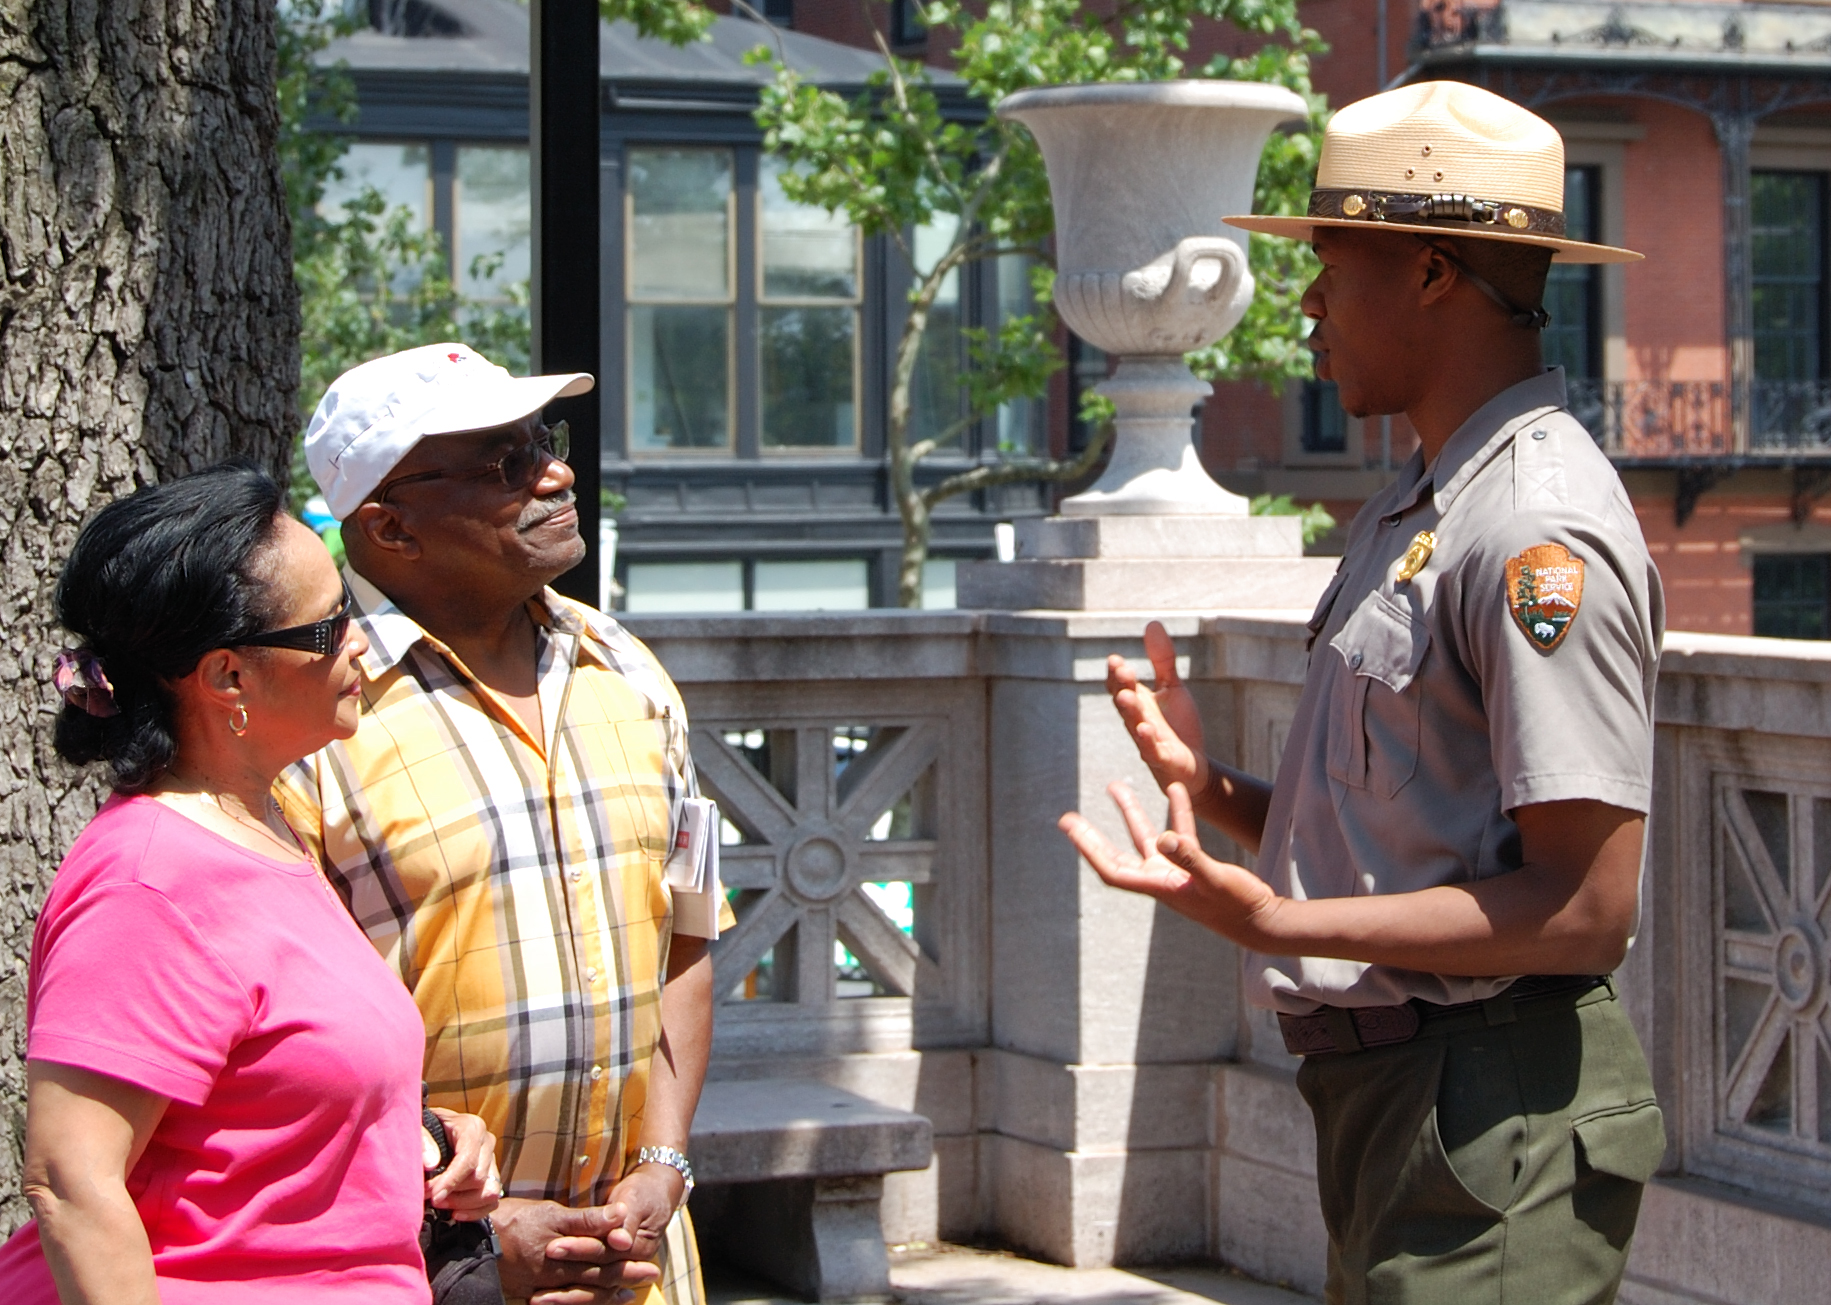 Park Ranger speaking with visitors about the Boston area and Boston African American NHS. They are speaking at the Robert Gould Shaw Memorial.